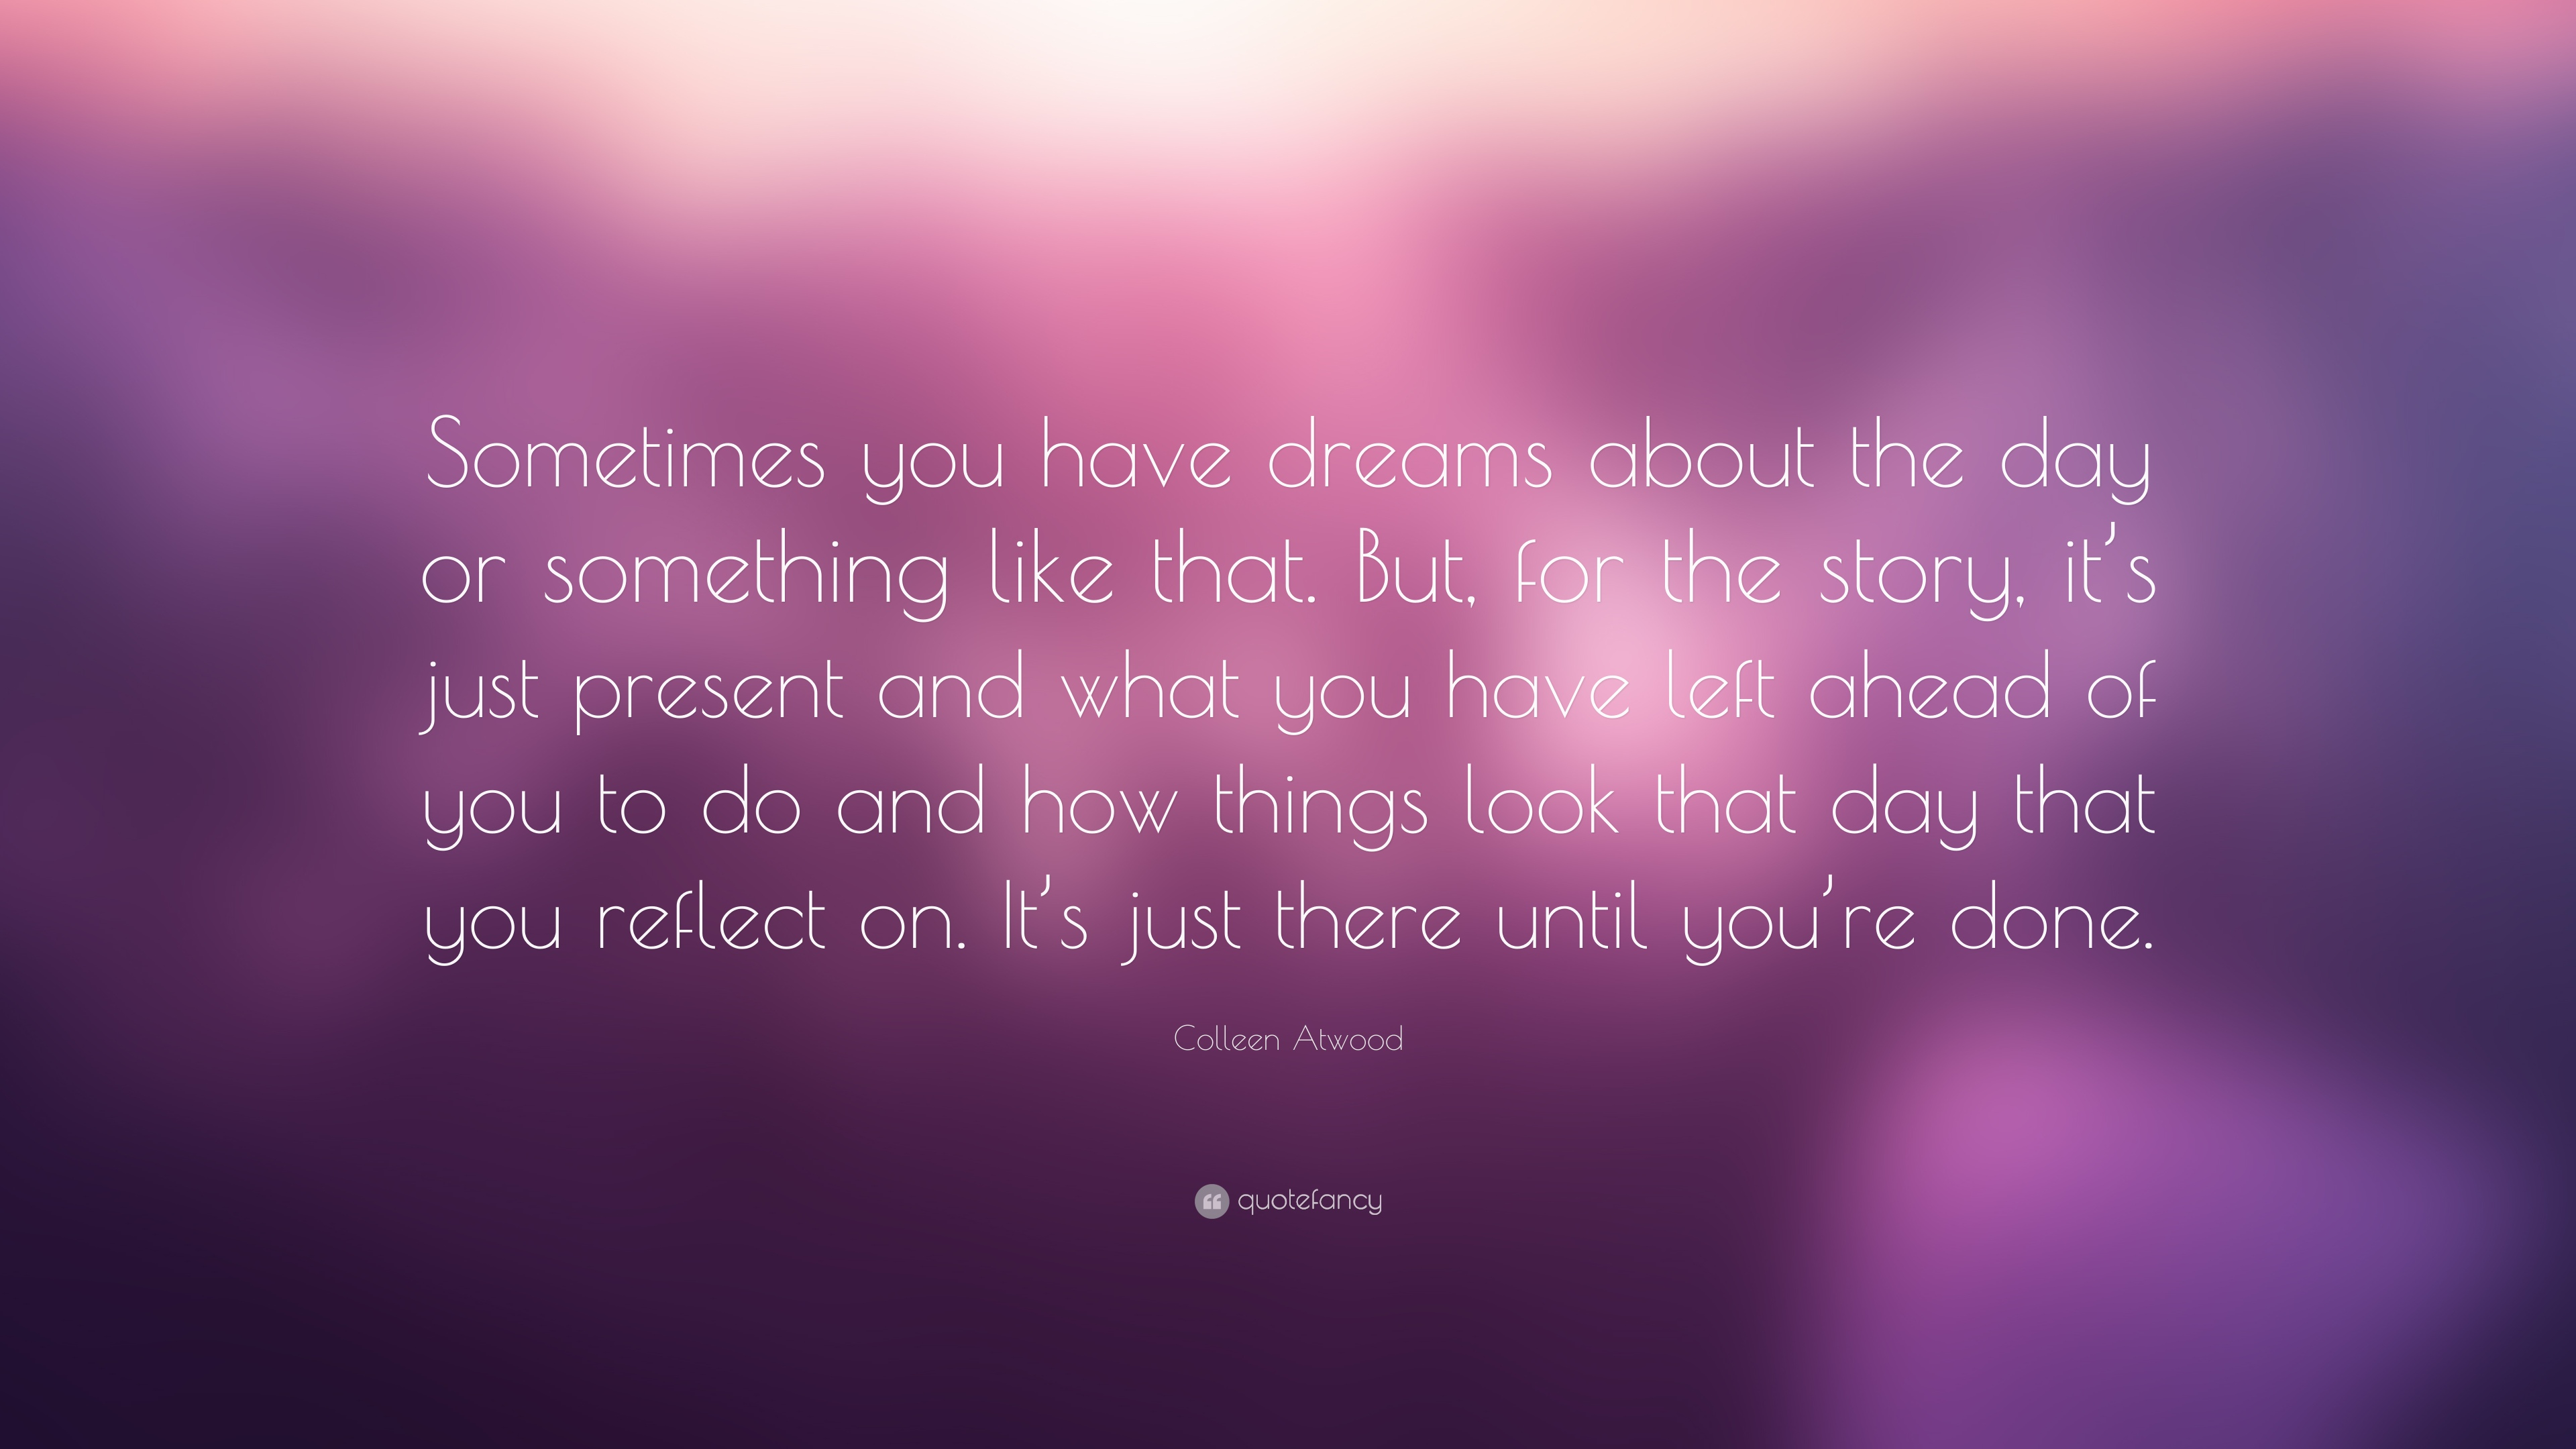 Colleen Atwood Quote: U201cSometimes You Have Dreams About The Day Or Something  Like That